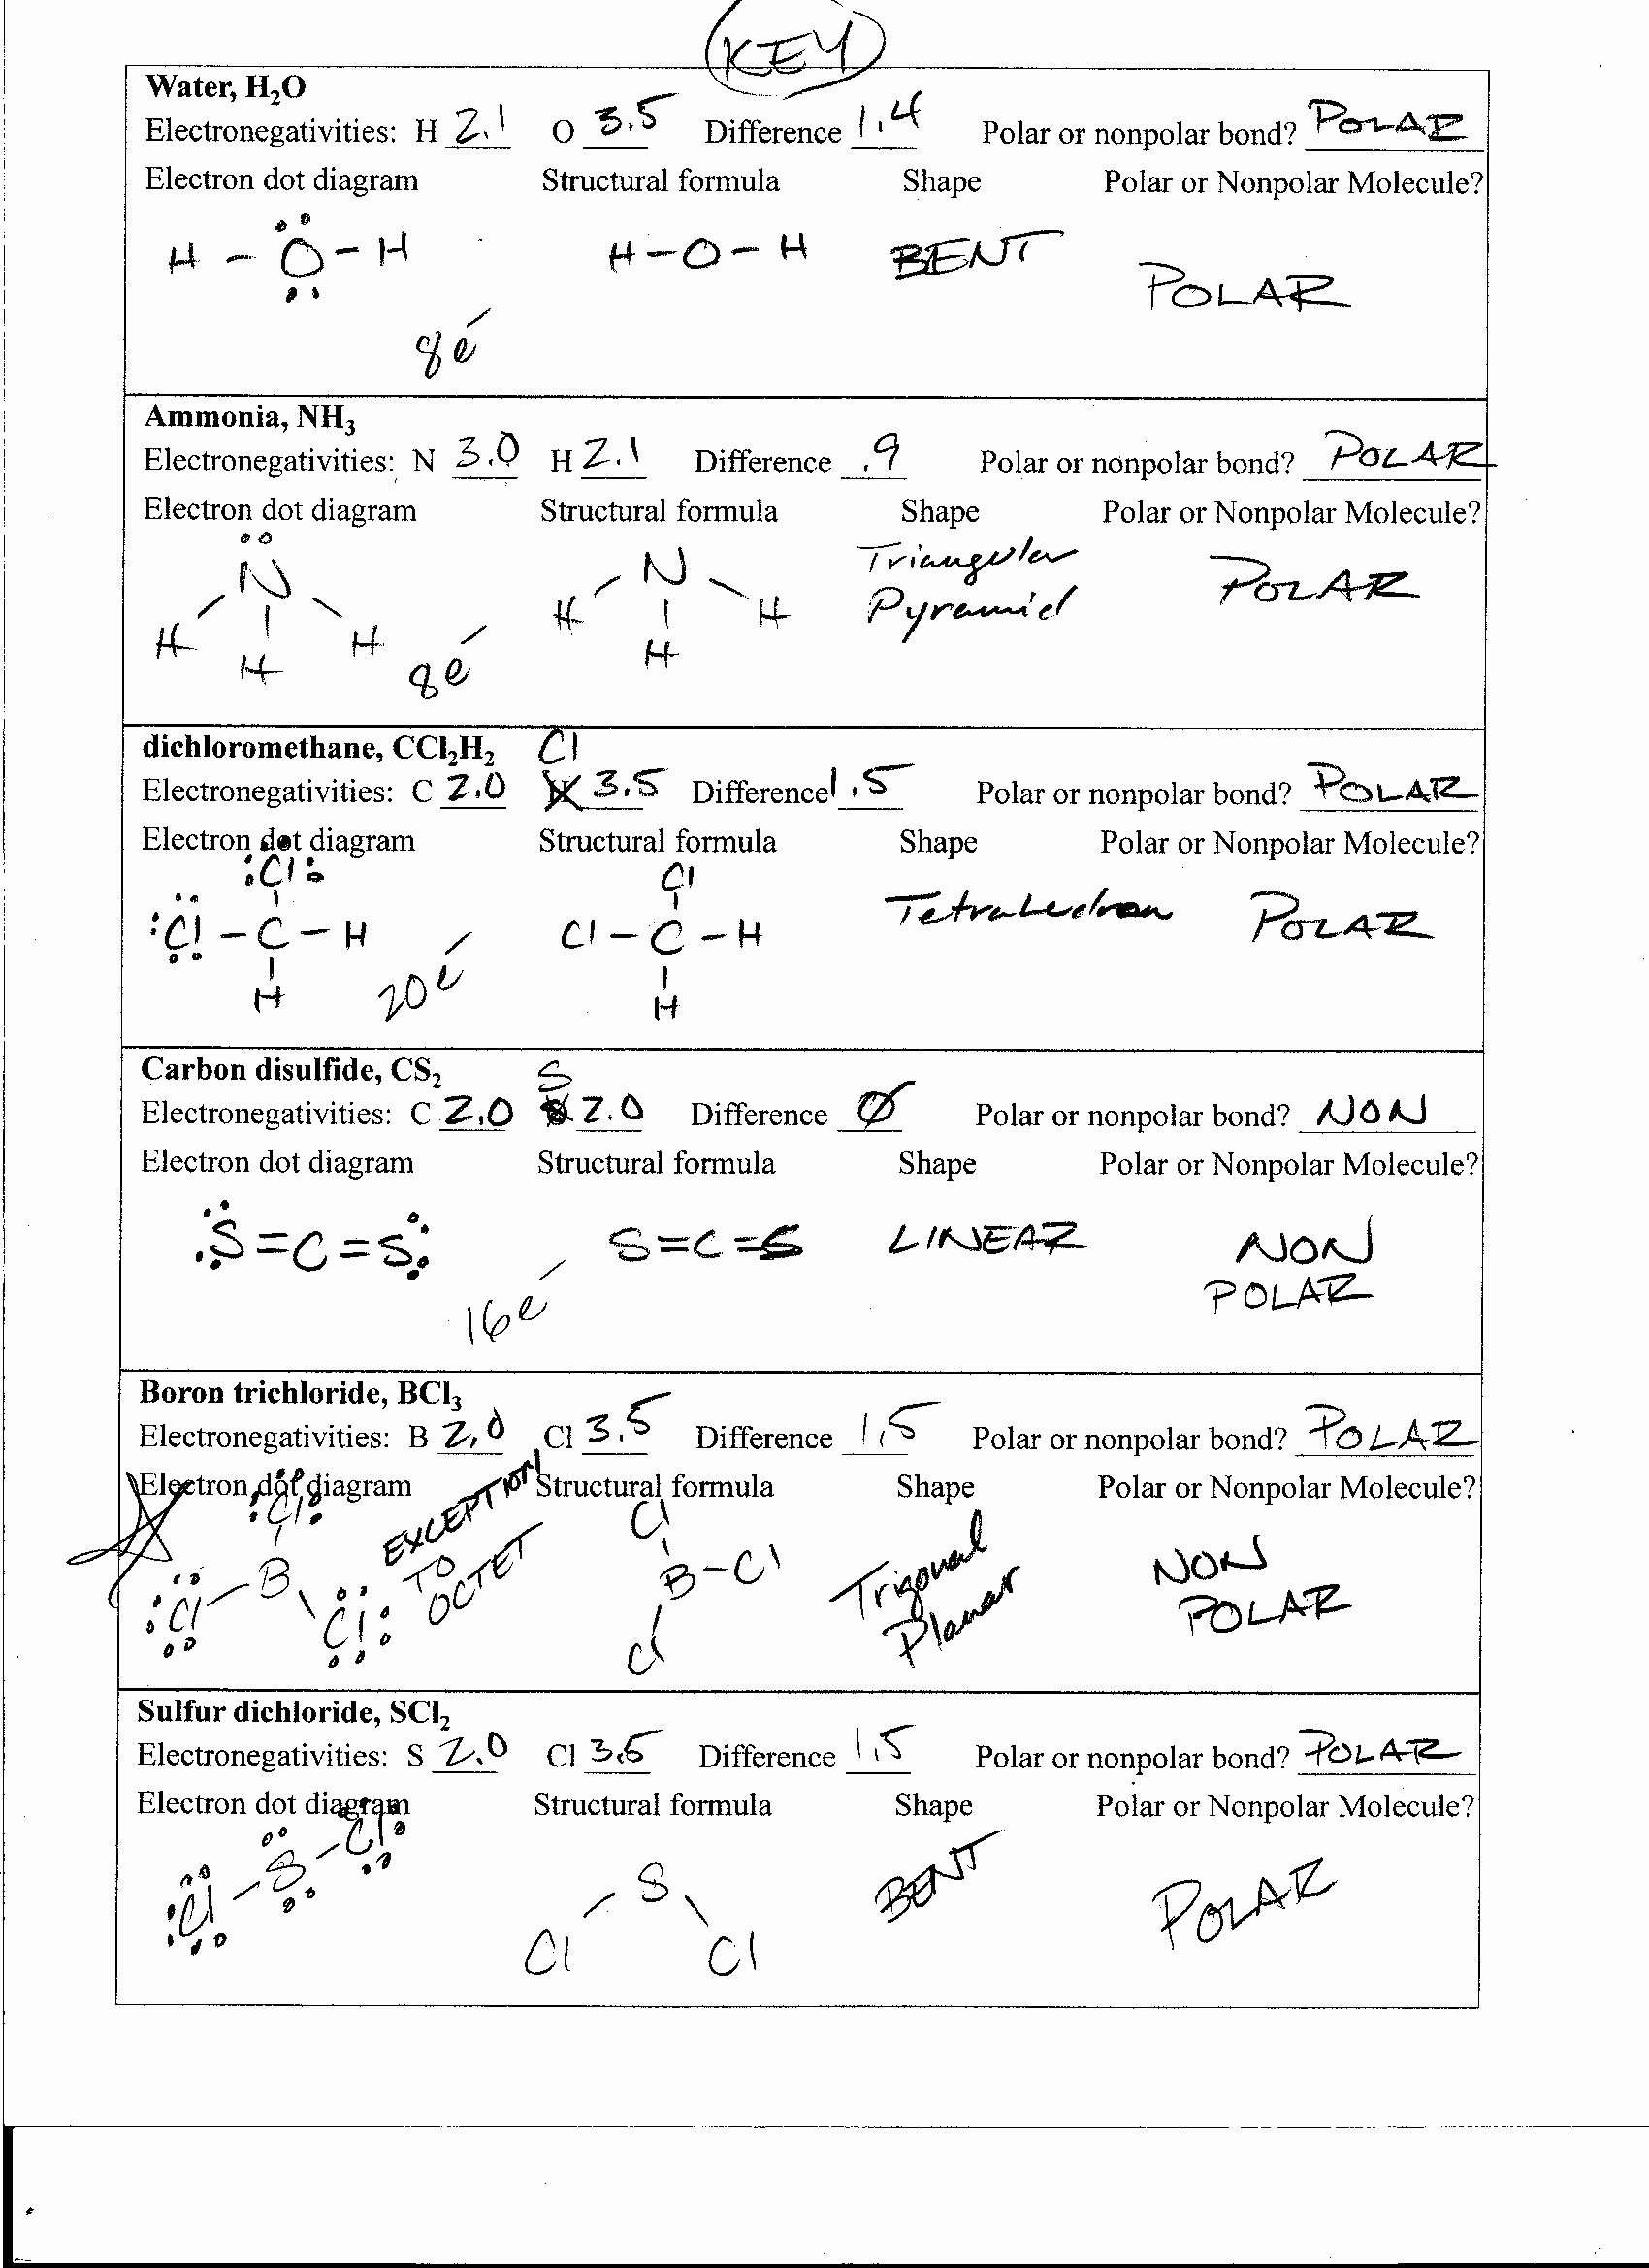 Worksheet Polarity Of Bonds Answers Elegant Ph & Poh Russian Answer Work Sheet Worksheets Tutsstar